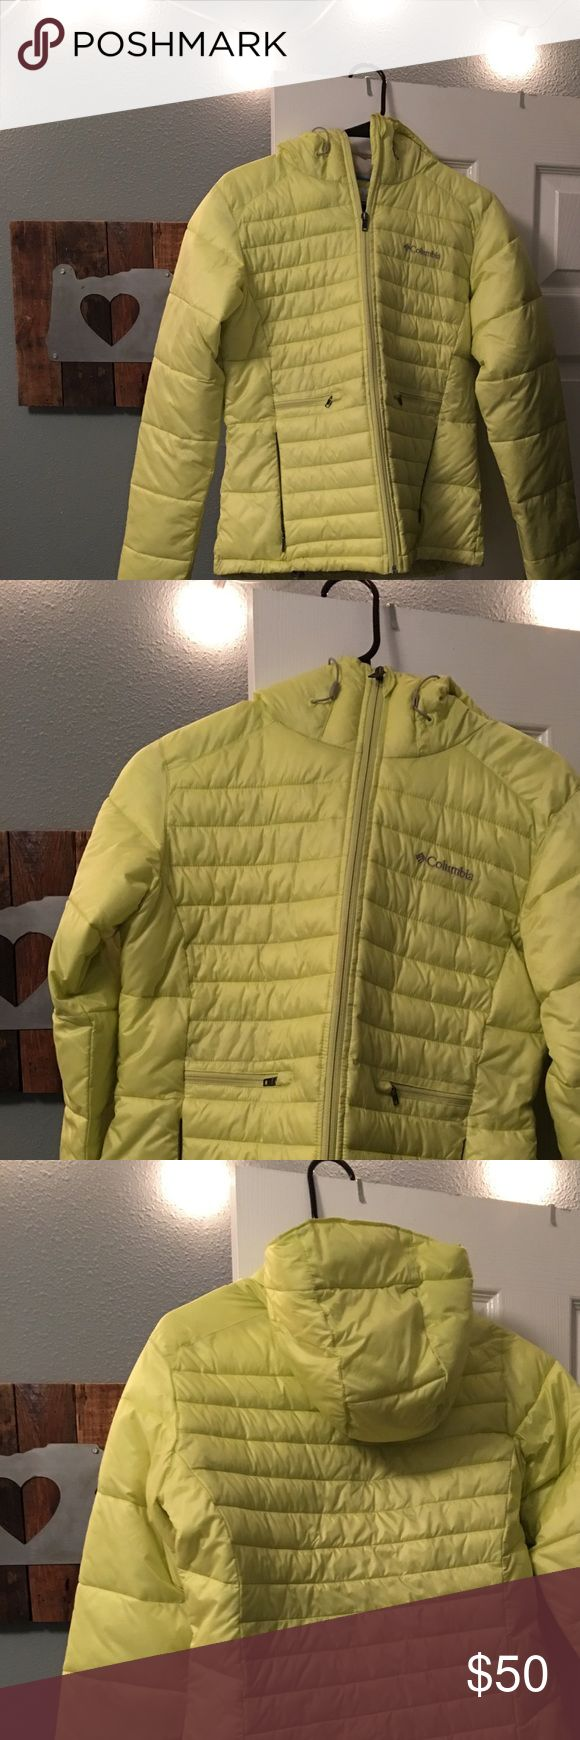 Columbia neon yellow down jacket. Super cute, comfortable, and warm! In great condition! Size medium. Columbia Jackets & Coats Puffers